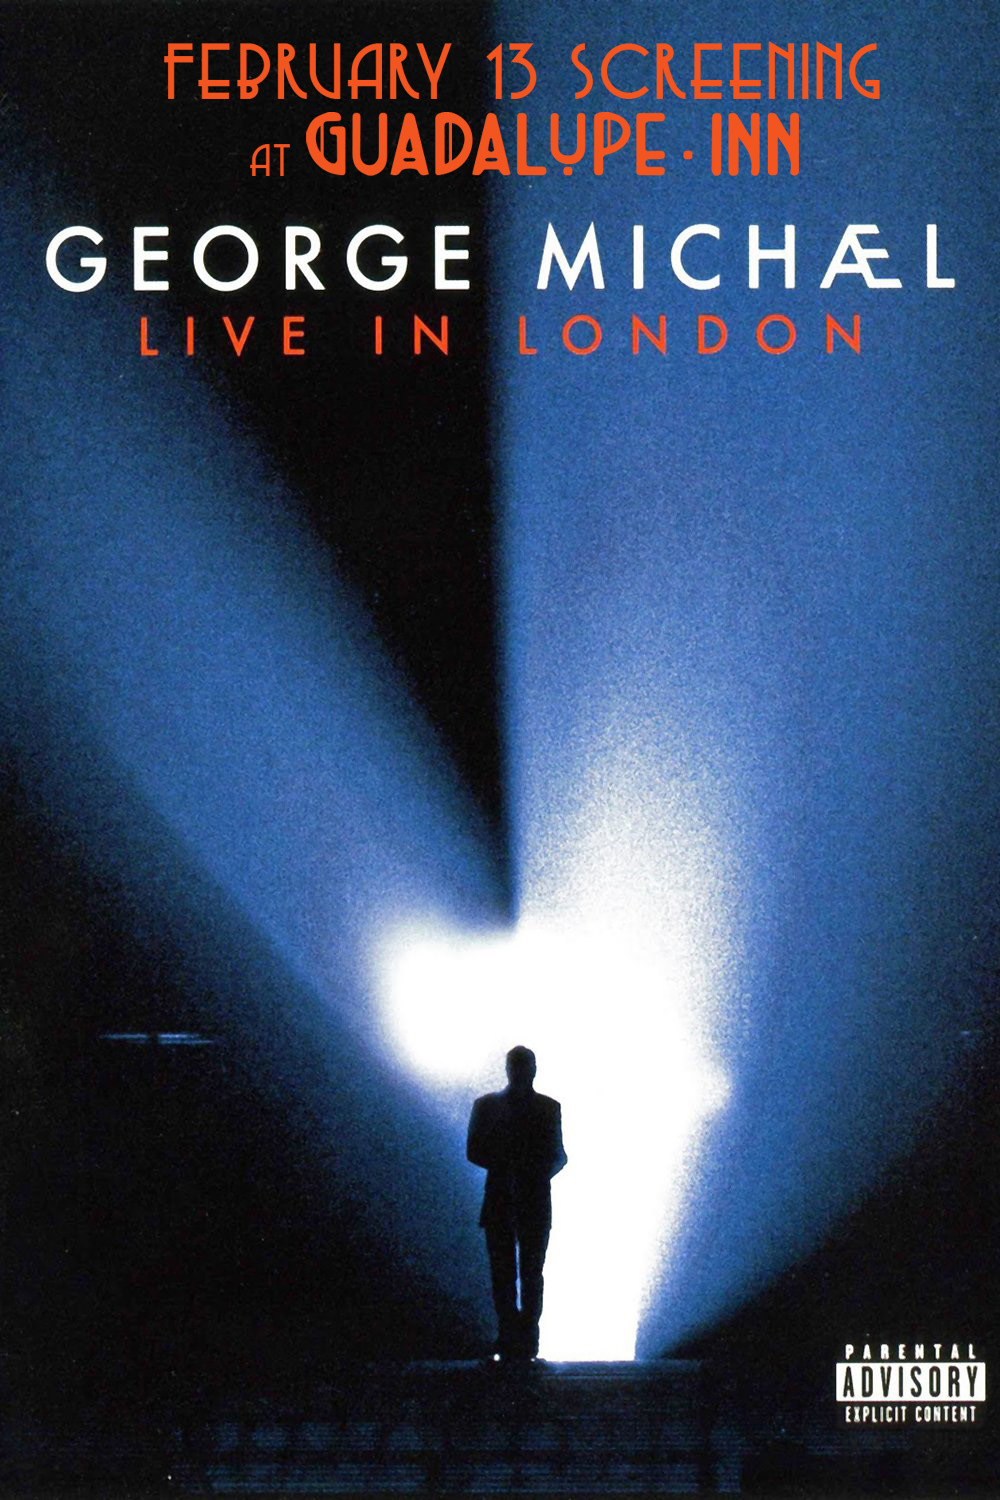 feb-13-george-michael.jpg